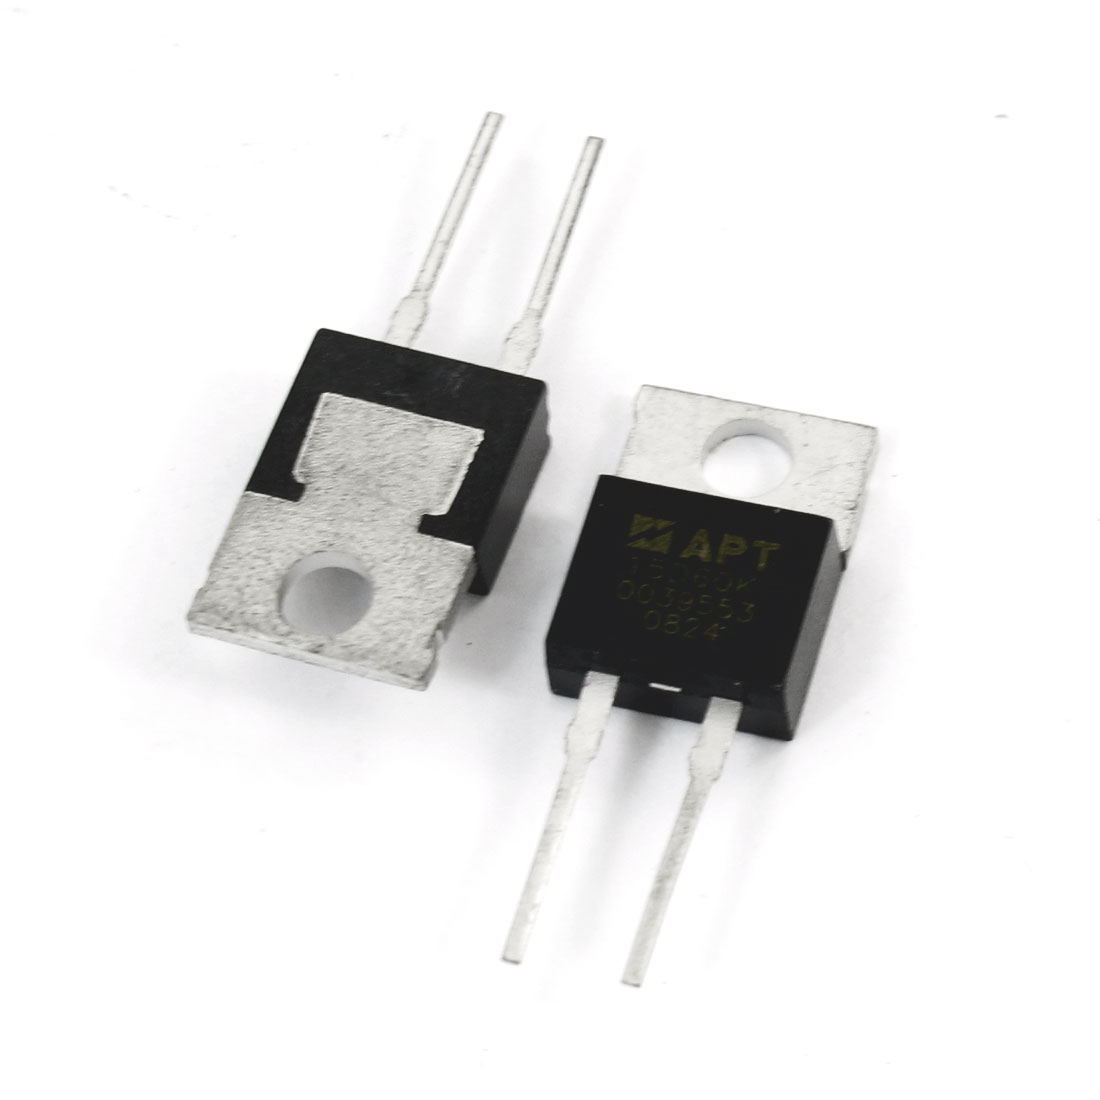 2 Pcs APT15D 60K 600V 15Amp High Switching Speed Silicon Transistor